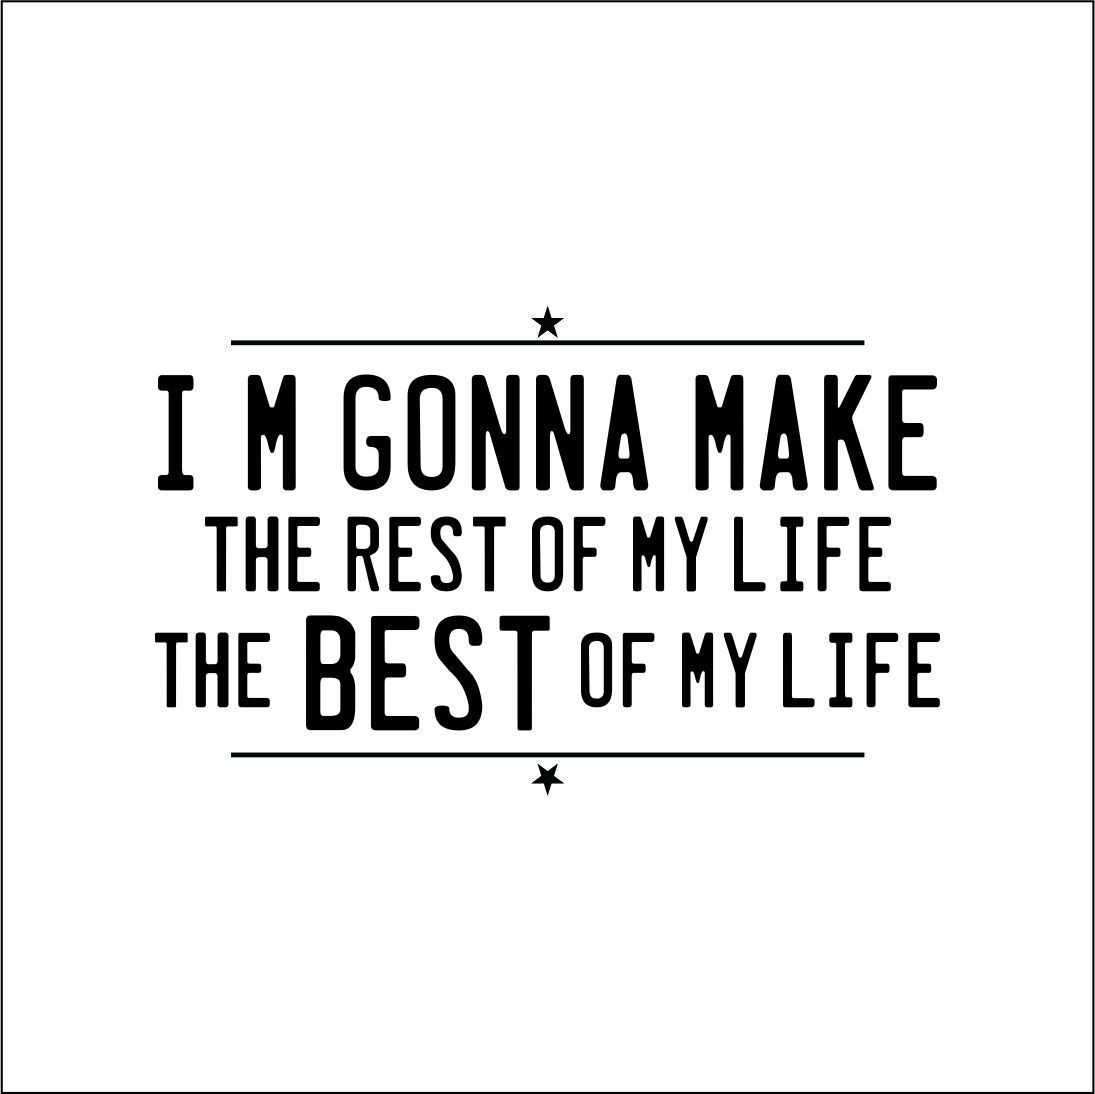 i_m_gonna_make_the_rest_of_my_life_the_best_of_my_life-whatsapp-profile-picture